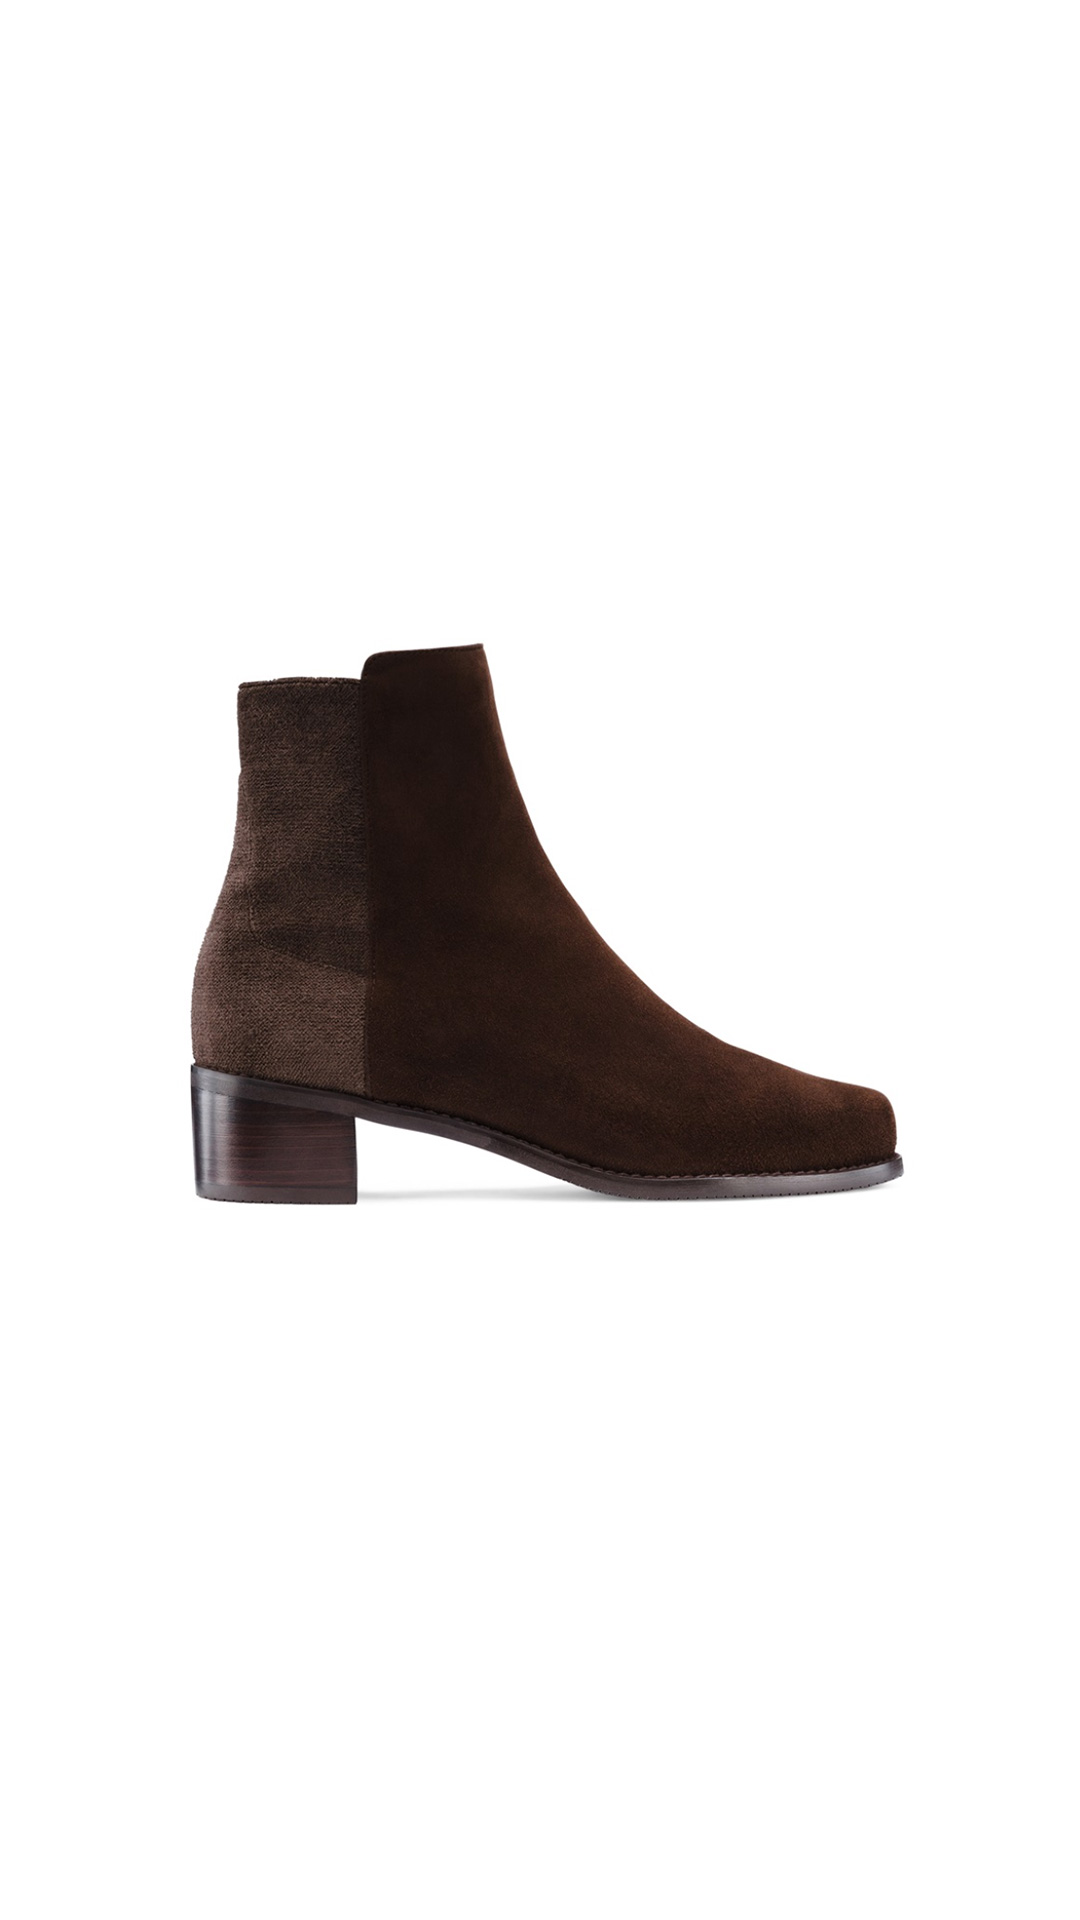 Stuart Weitzman easyon reserve walnut boots at The Bicester Village Shopping Collection